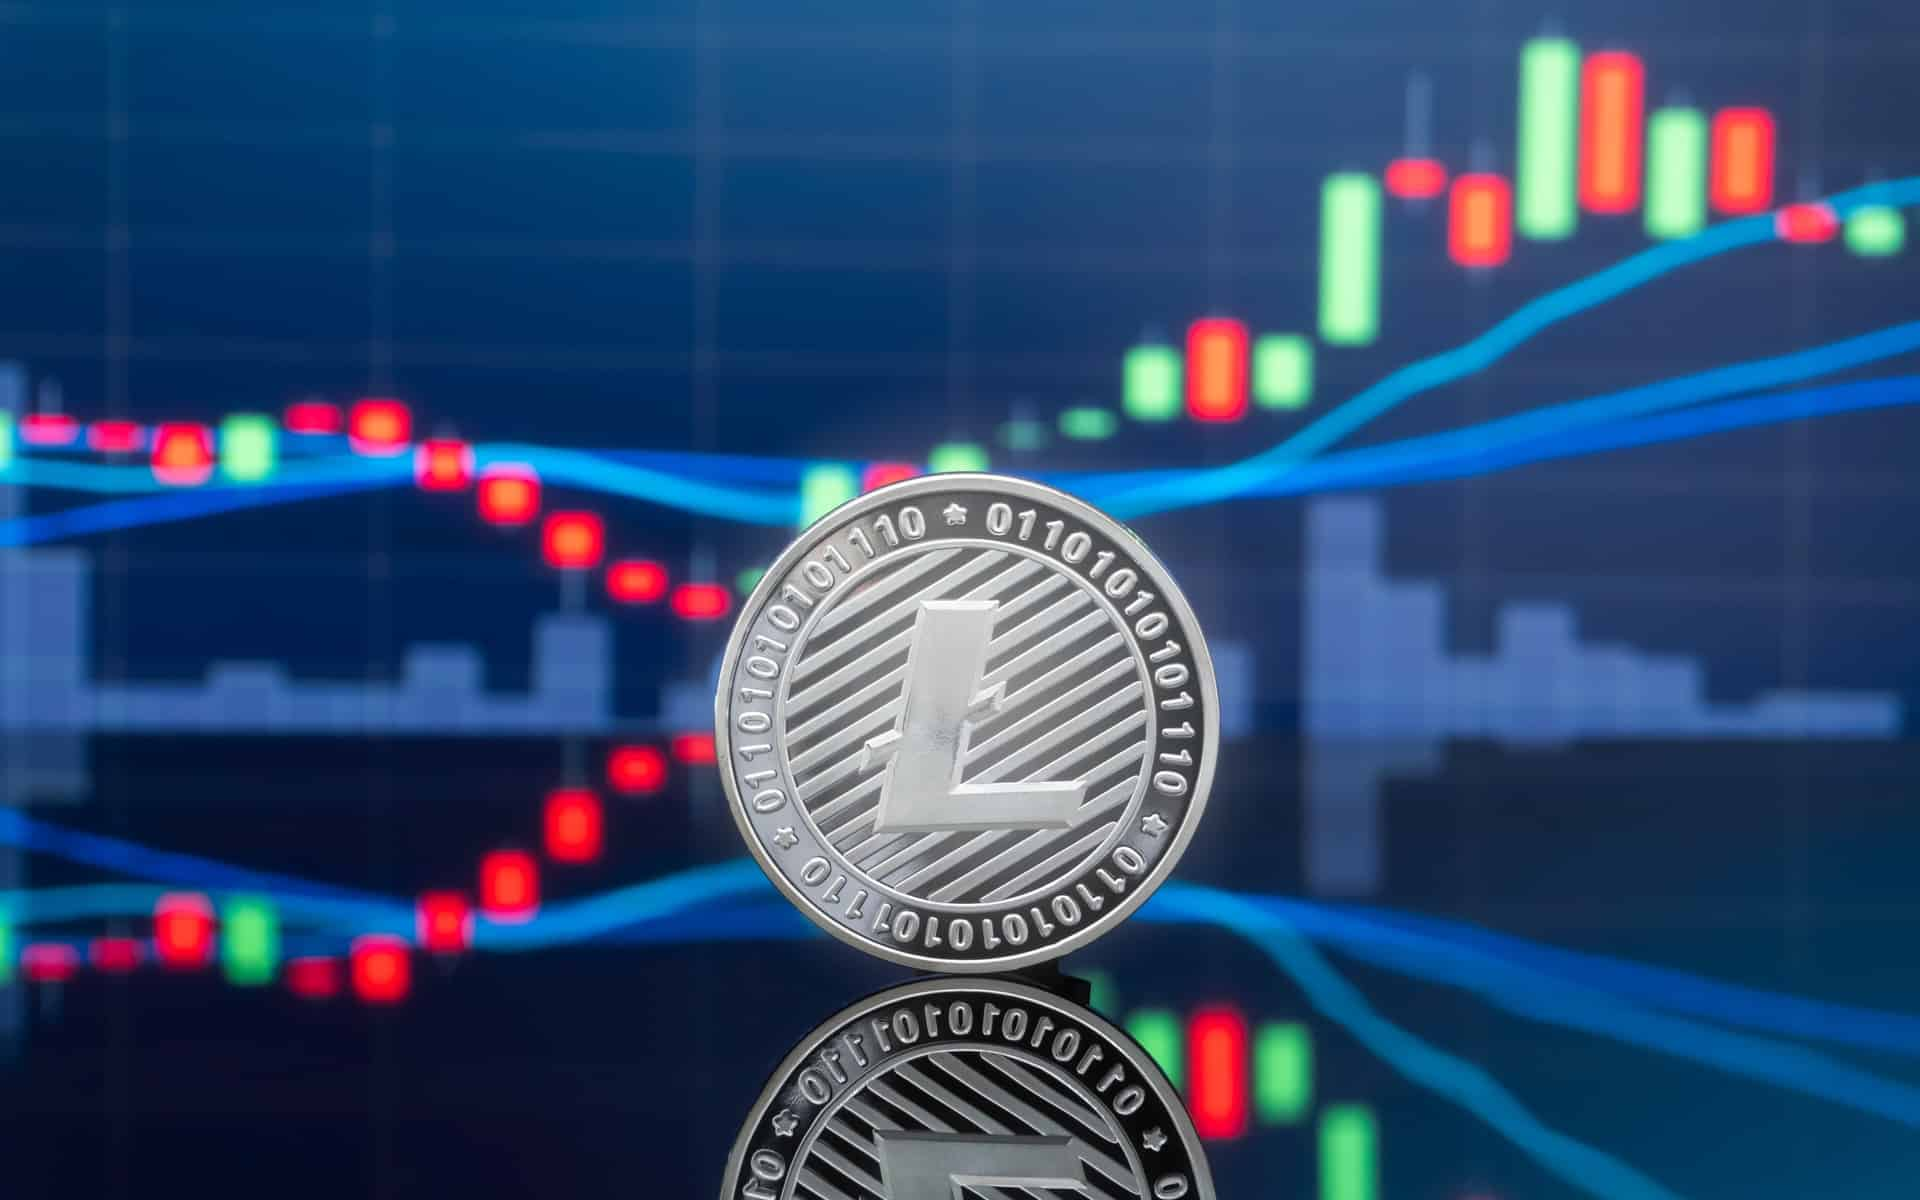 Litecoin Price Prediction and Forecast: Should You Buy Litecon?